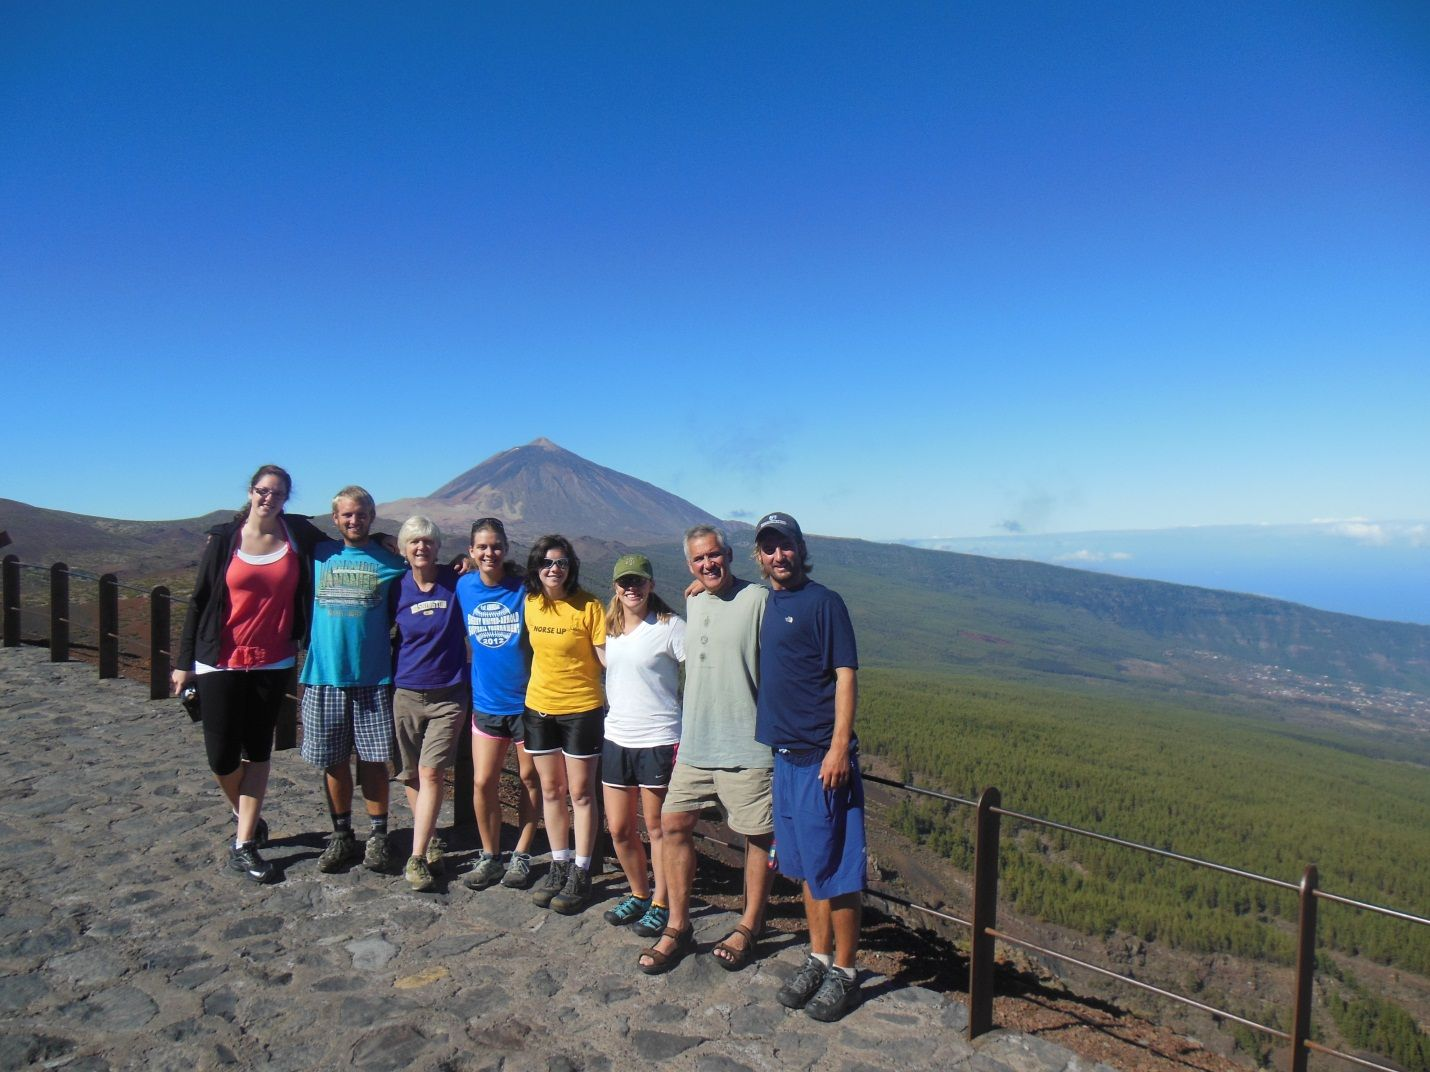 9.30.12-see that volcano in the background? that's Mt. Teide, the world's 3rd tallest active volcano, and we hiked up it!!!